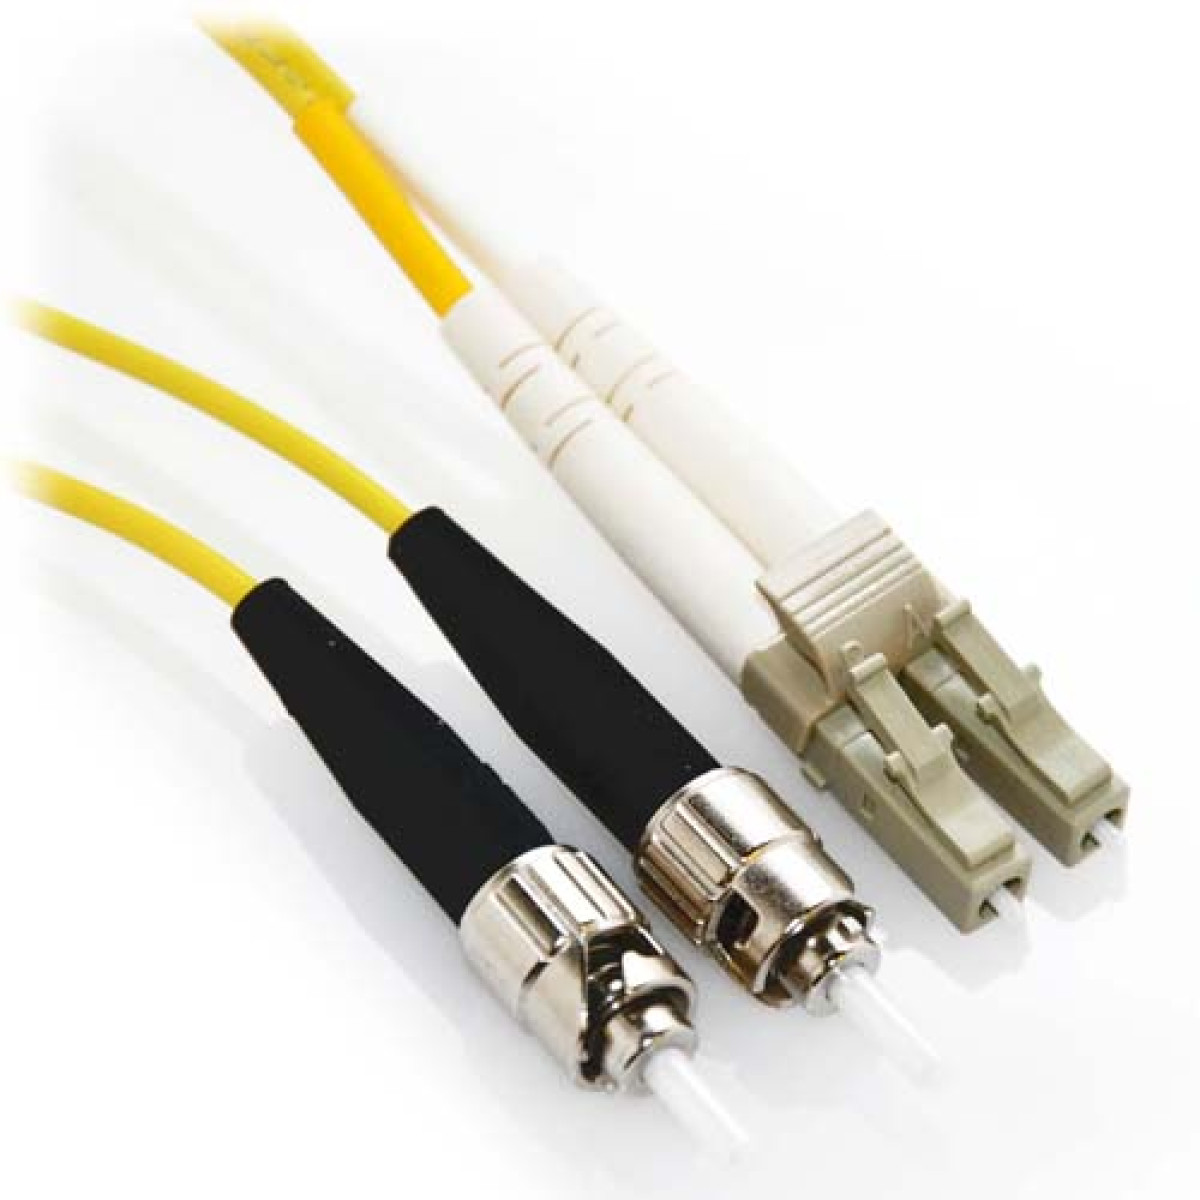 3m ST-LC ST to LC Duplex Multimode 62.5//125 Fiber Optic Patch Cord Jumper Cable